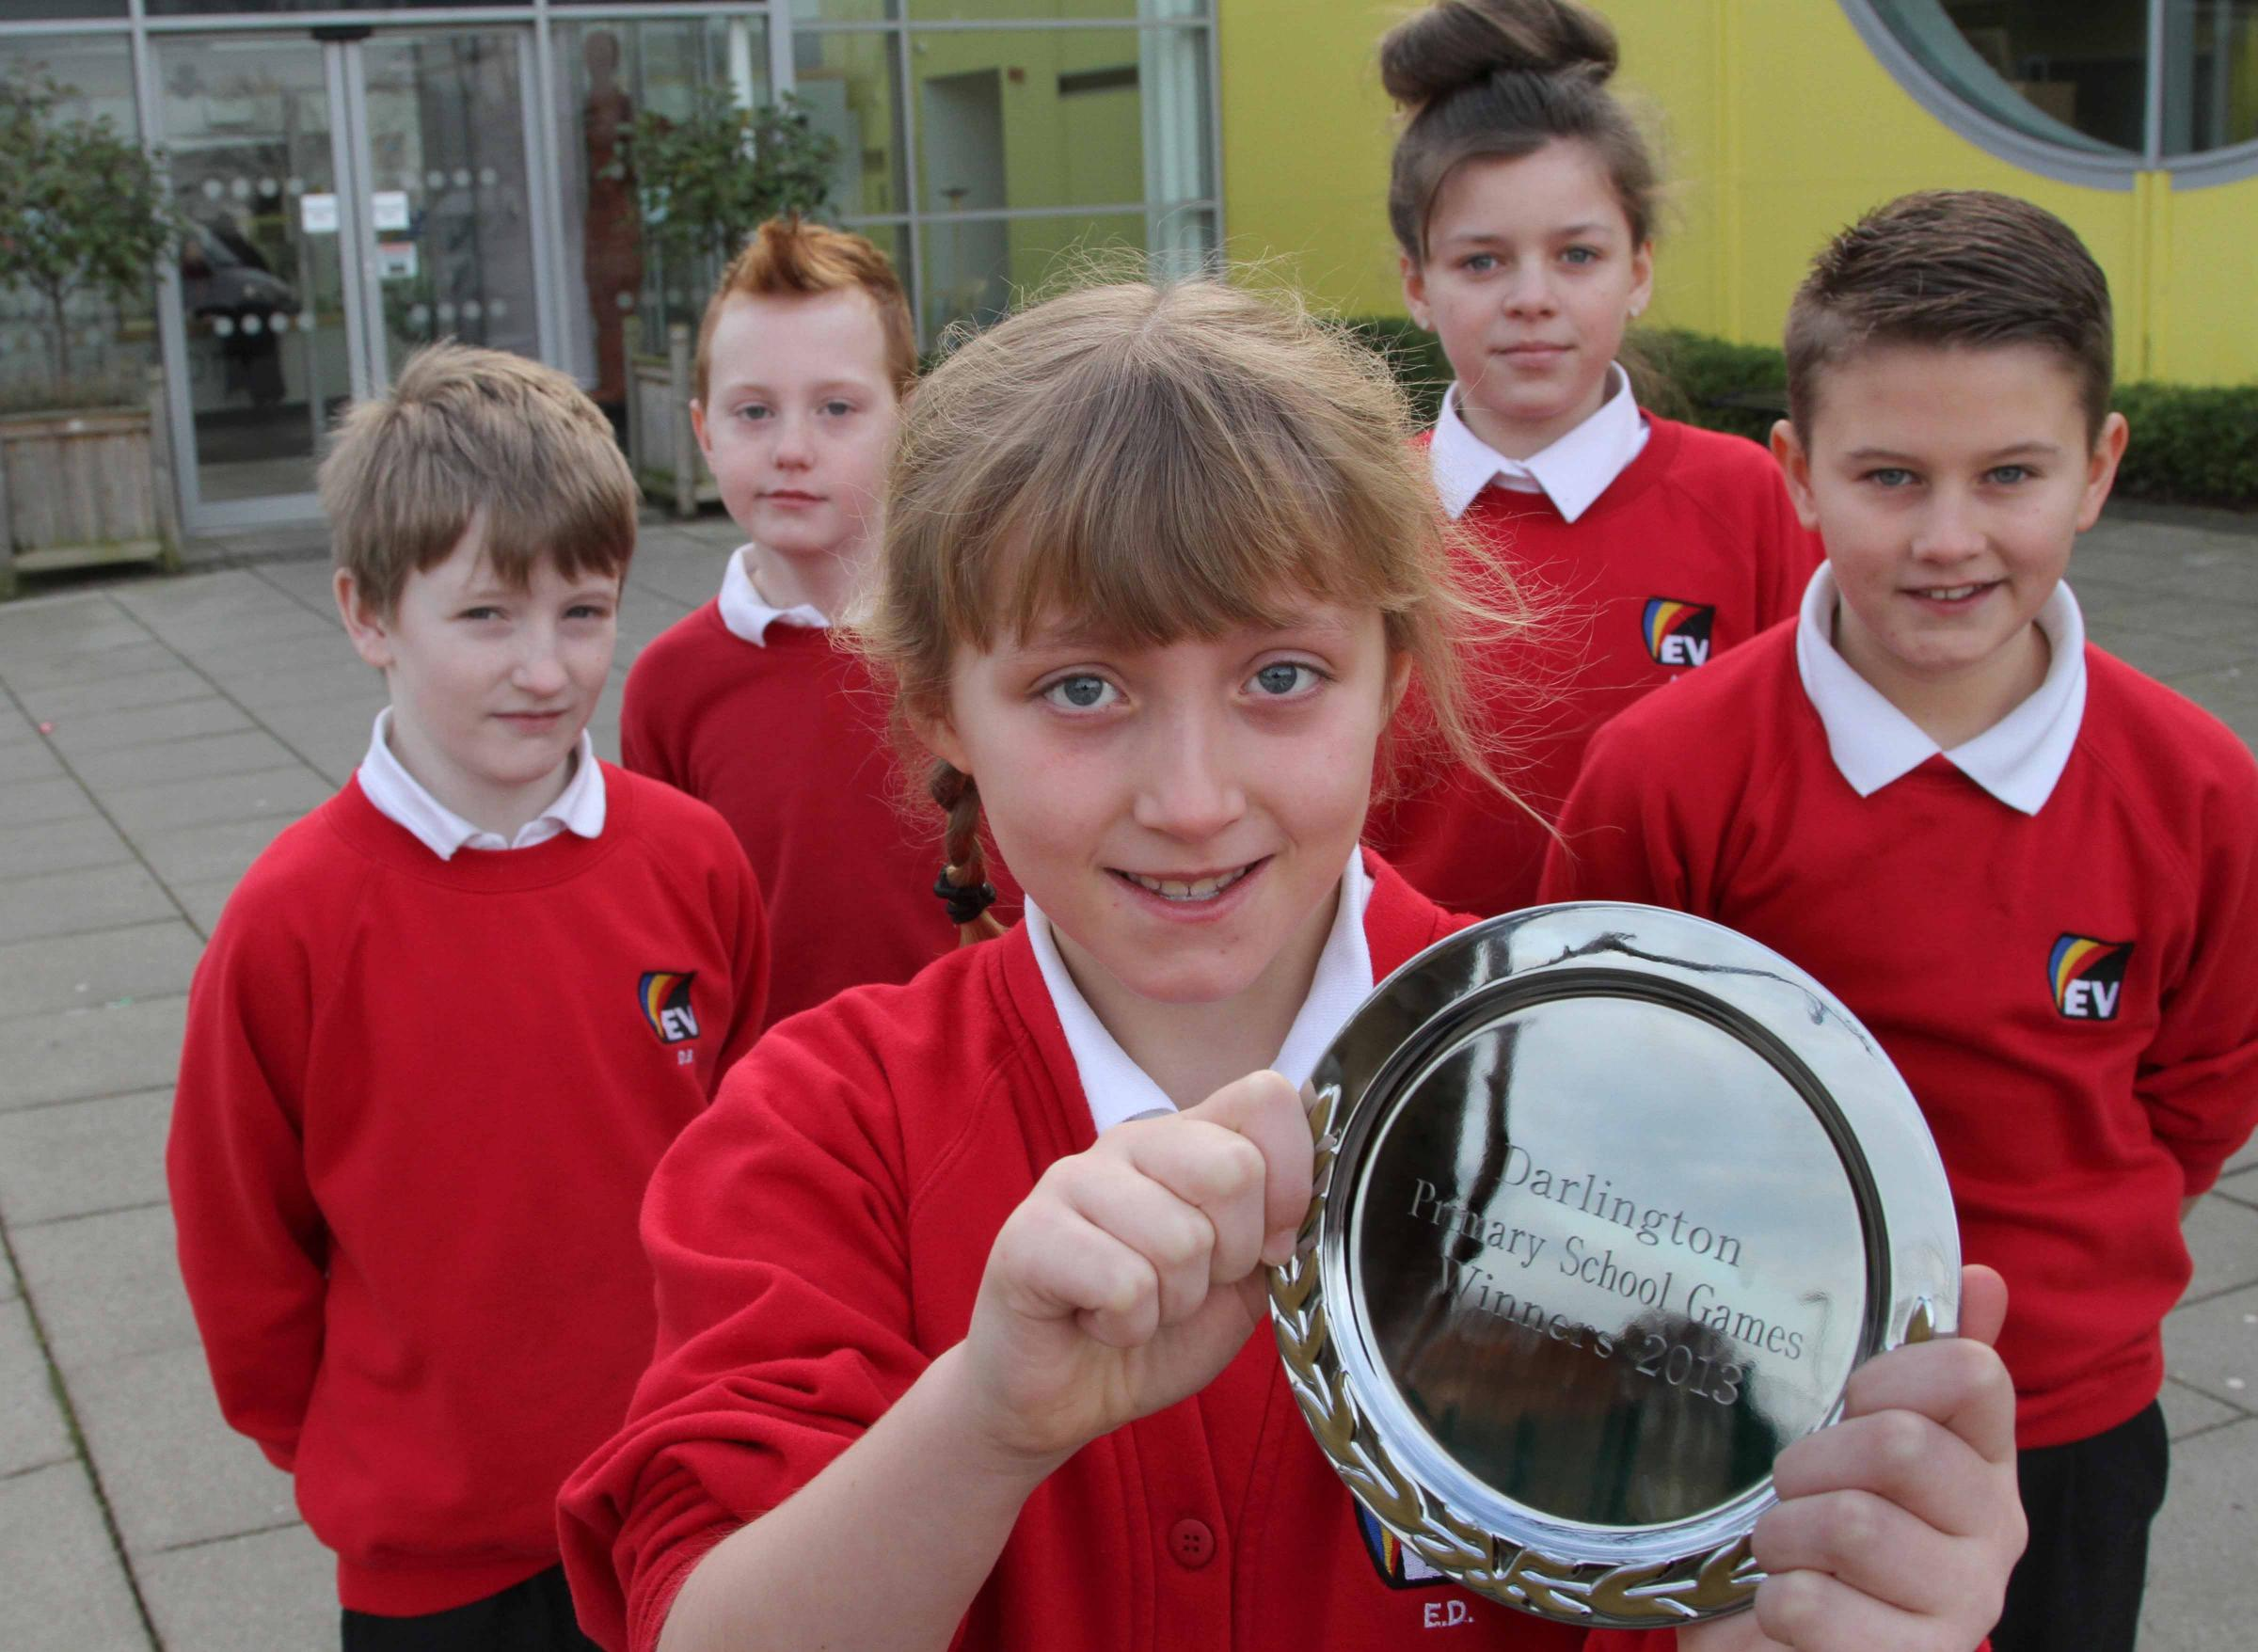 Young athletes from Springfield Academy who won the Darlington Primary School Games with their trophy from left David Beattie, 10, James Taylor, 11, Emma Doudican, 9, Arizona Rutter, 11 and Taylor Hutchinson, 10. Pic: Andy Lamb